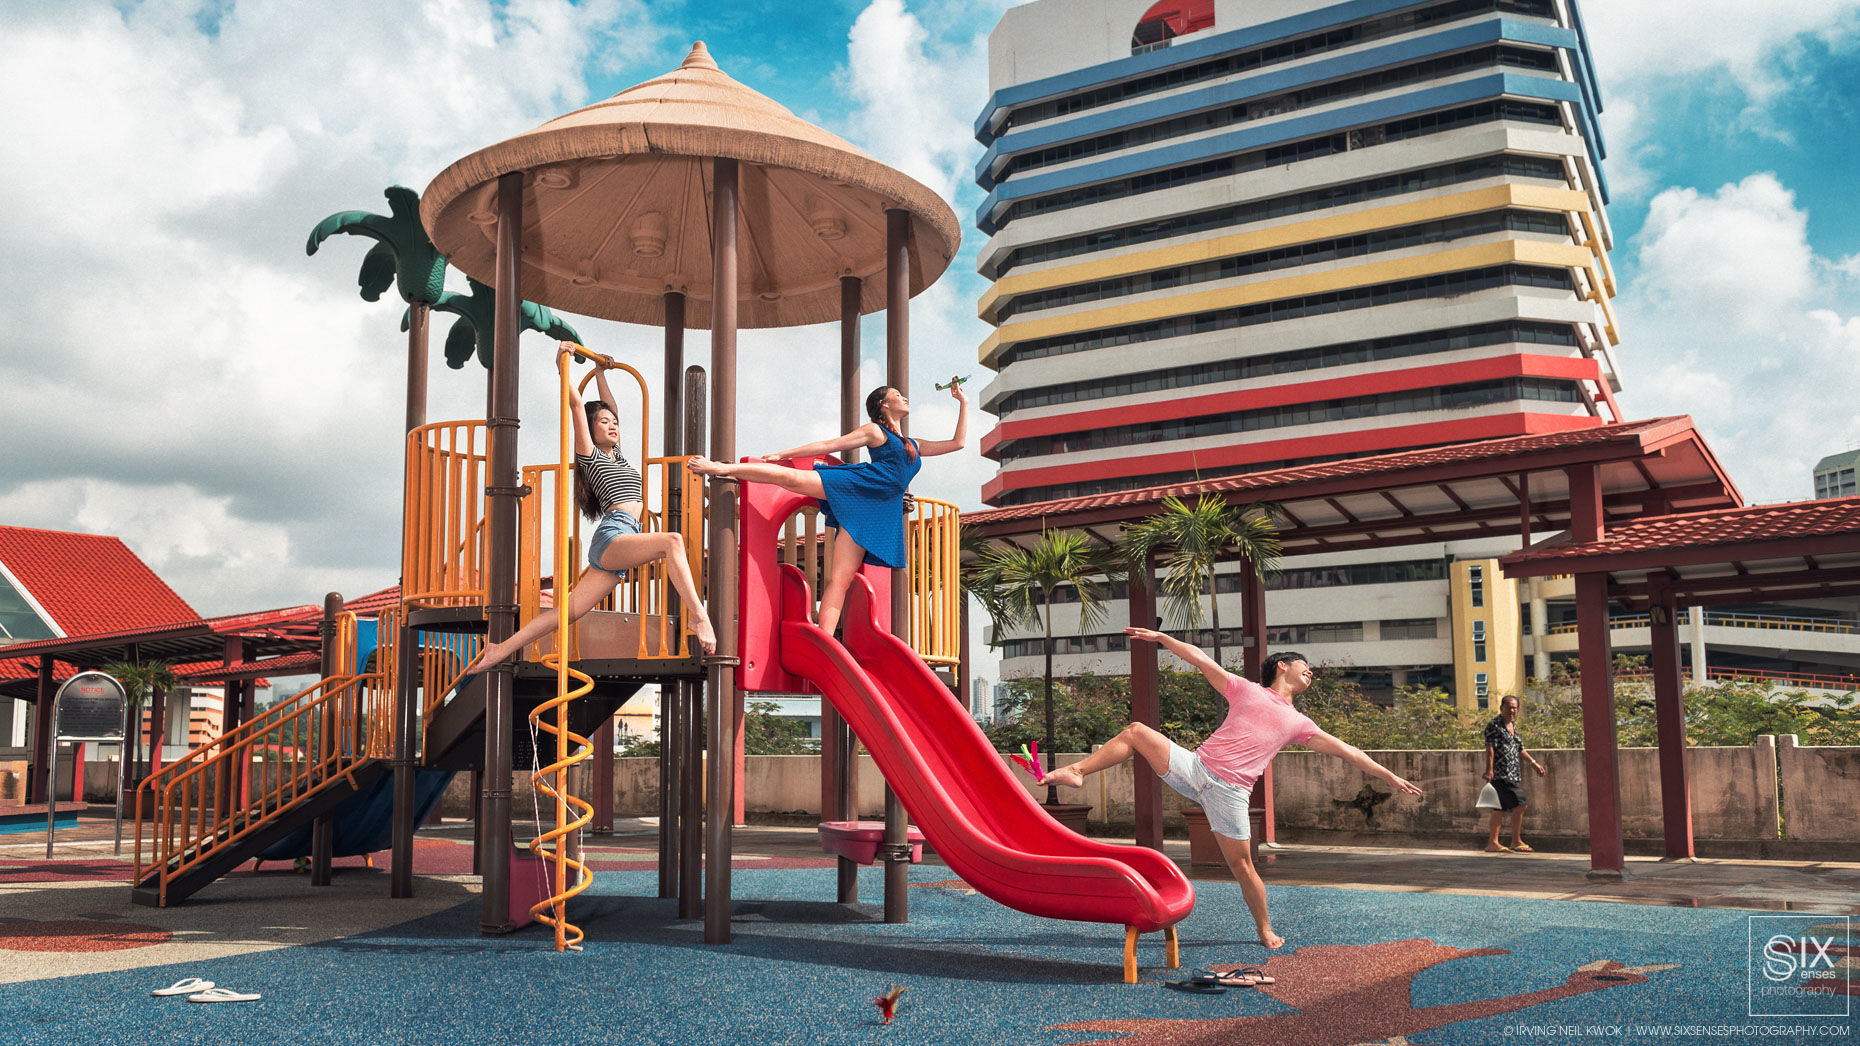 6sp-3-Rochor_Playground-1-5+8+13